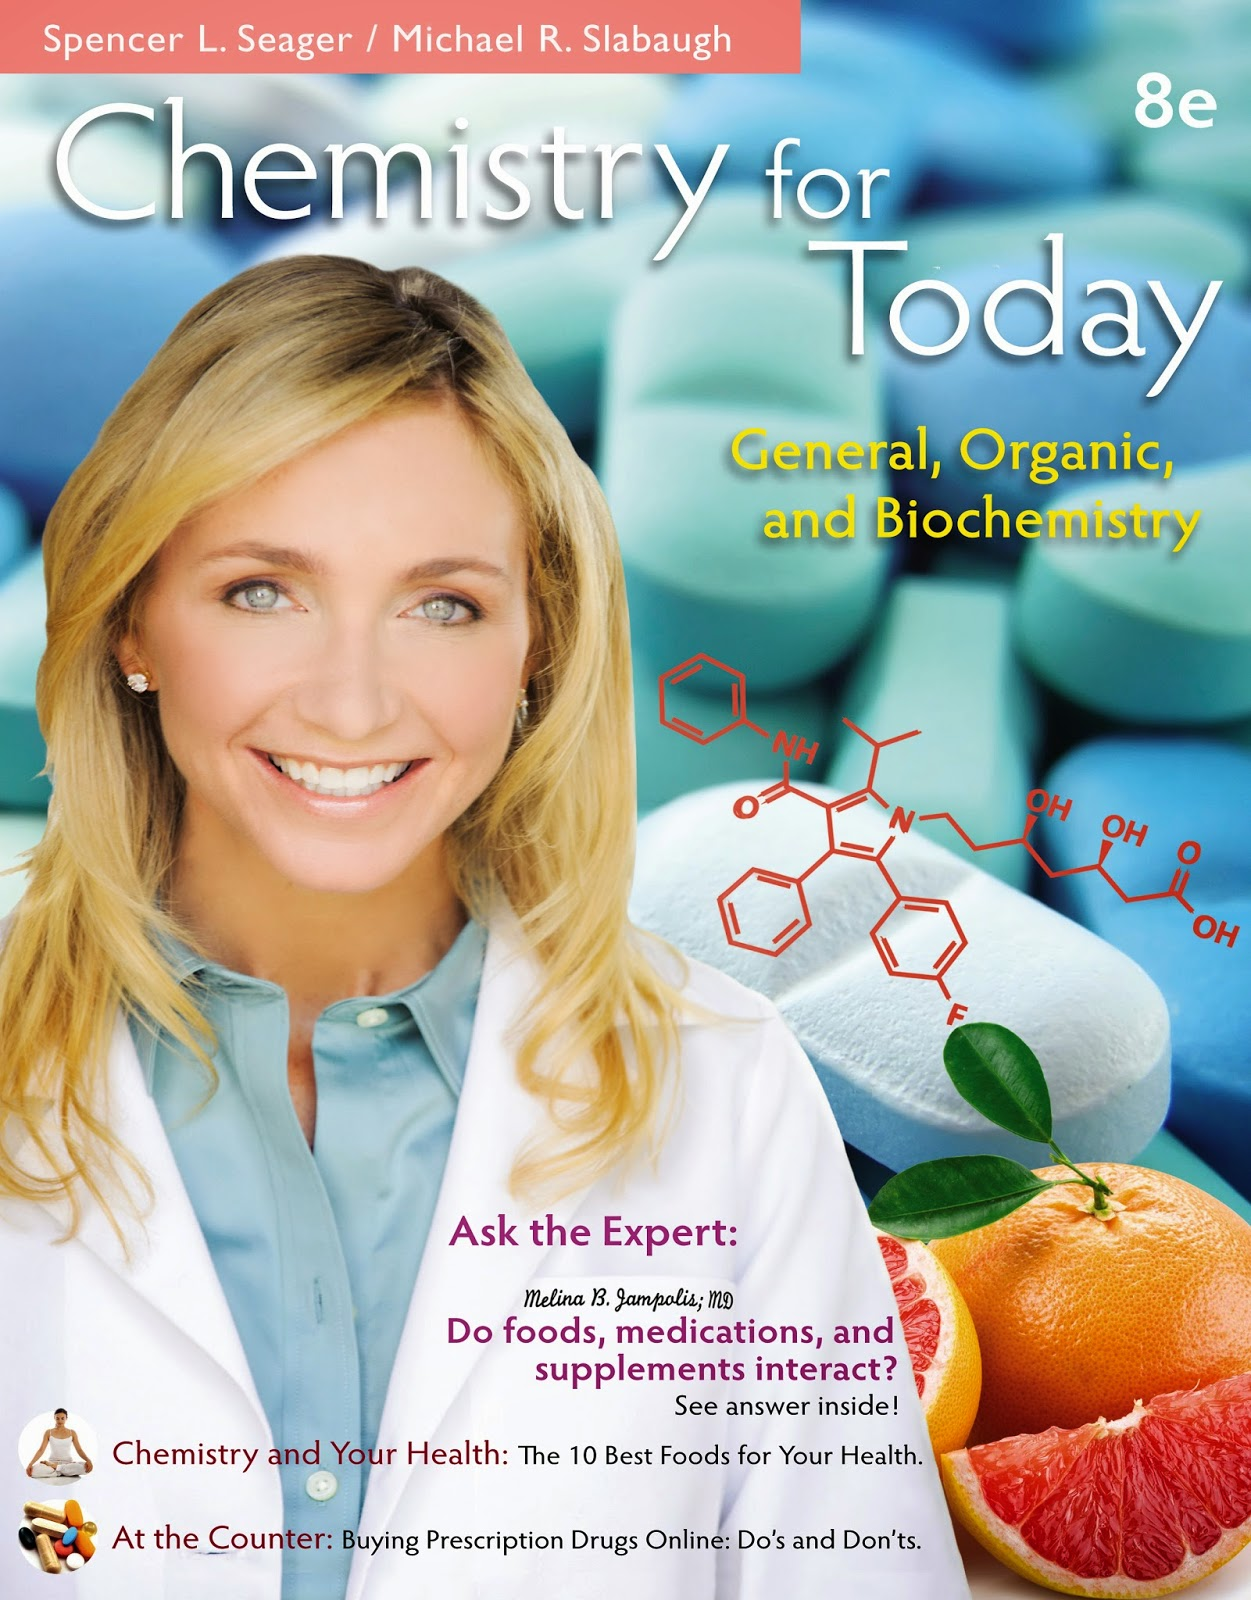 http://kingcheapebook.blogspot.com/2014/07/chemistry-for-today-general-organic-and.html